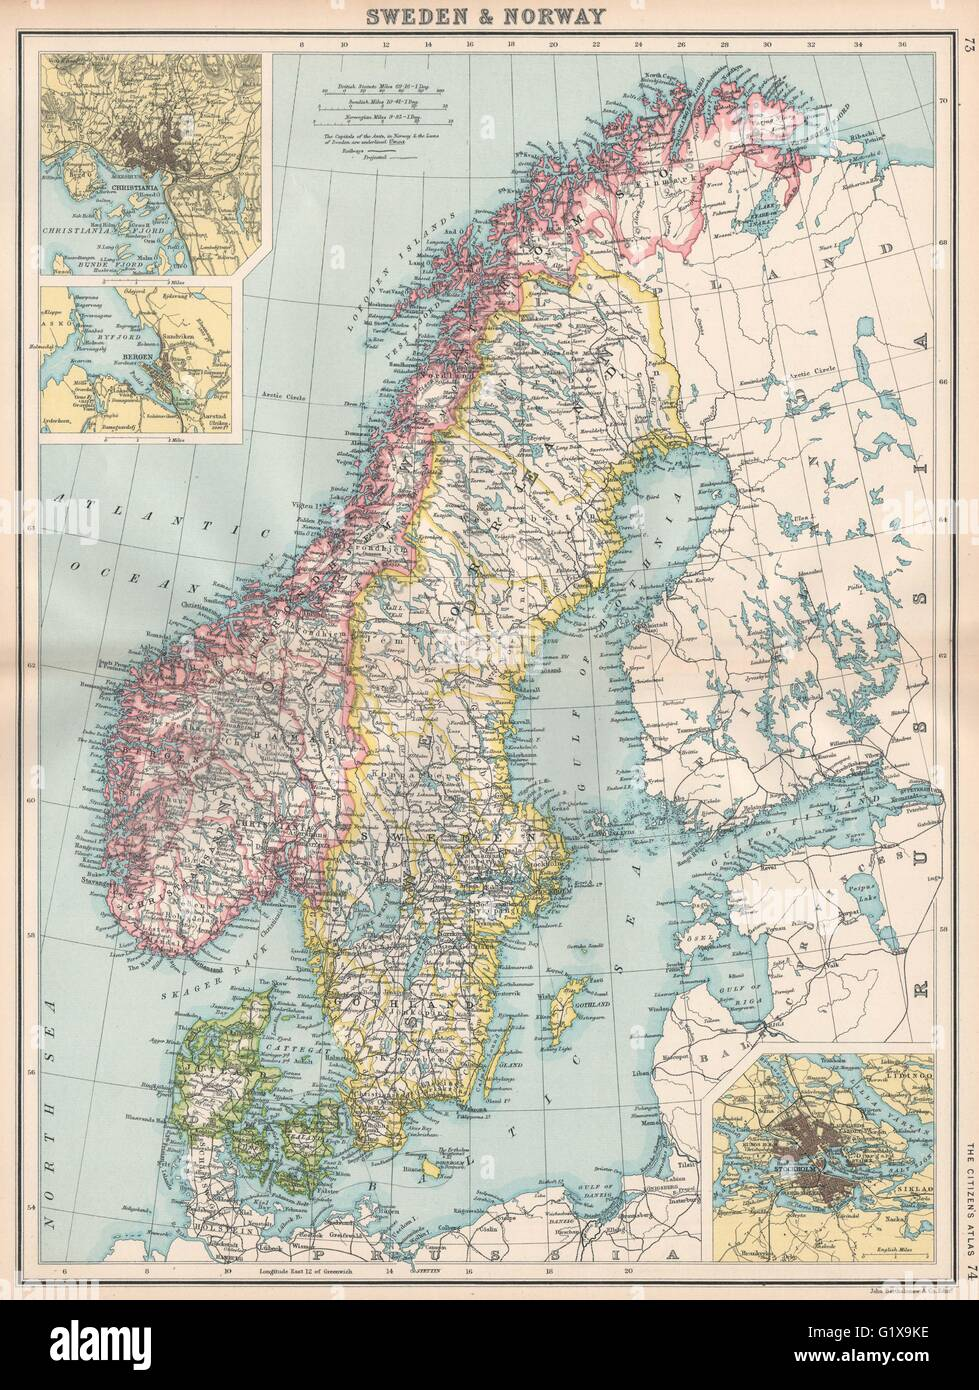 SCANDINAVIA Sweden Norway Denmark Inset Christiania Oslo Stock - Sweden map search